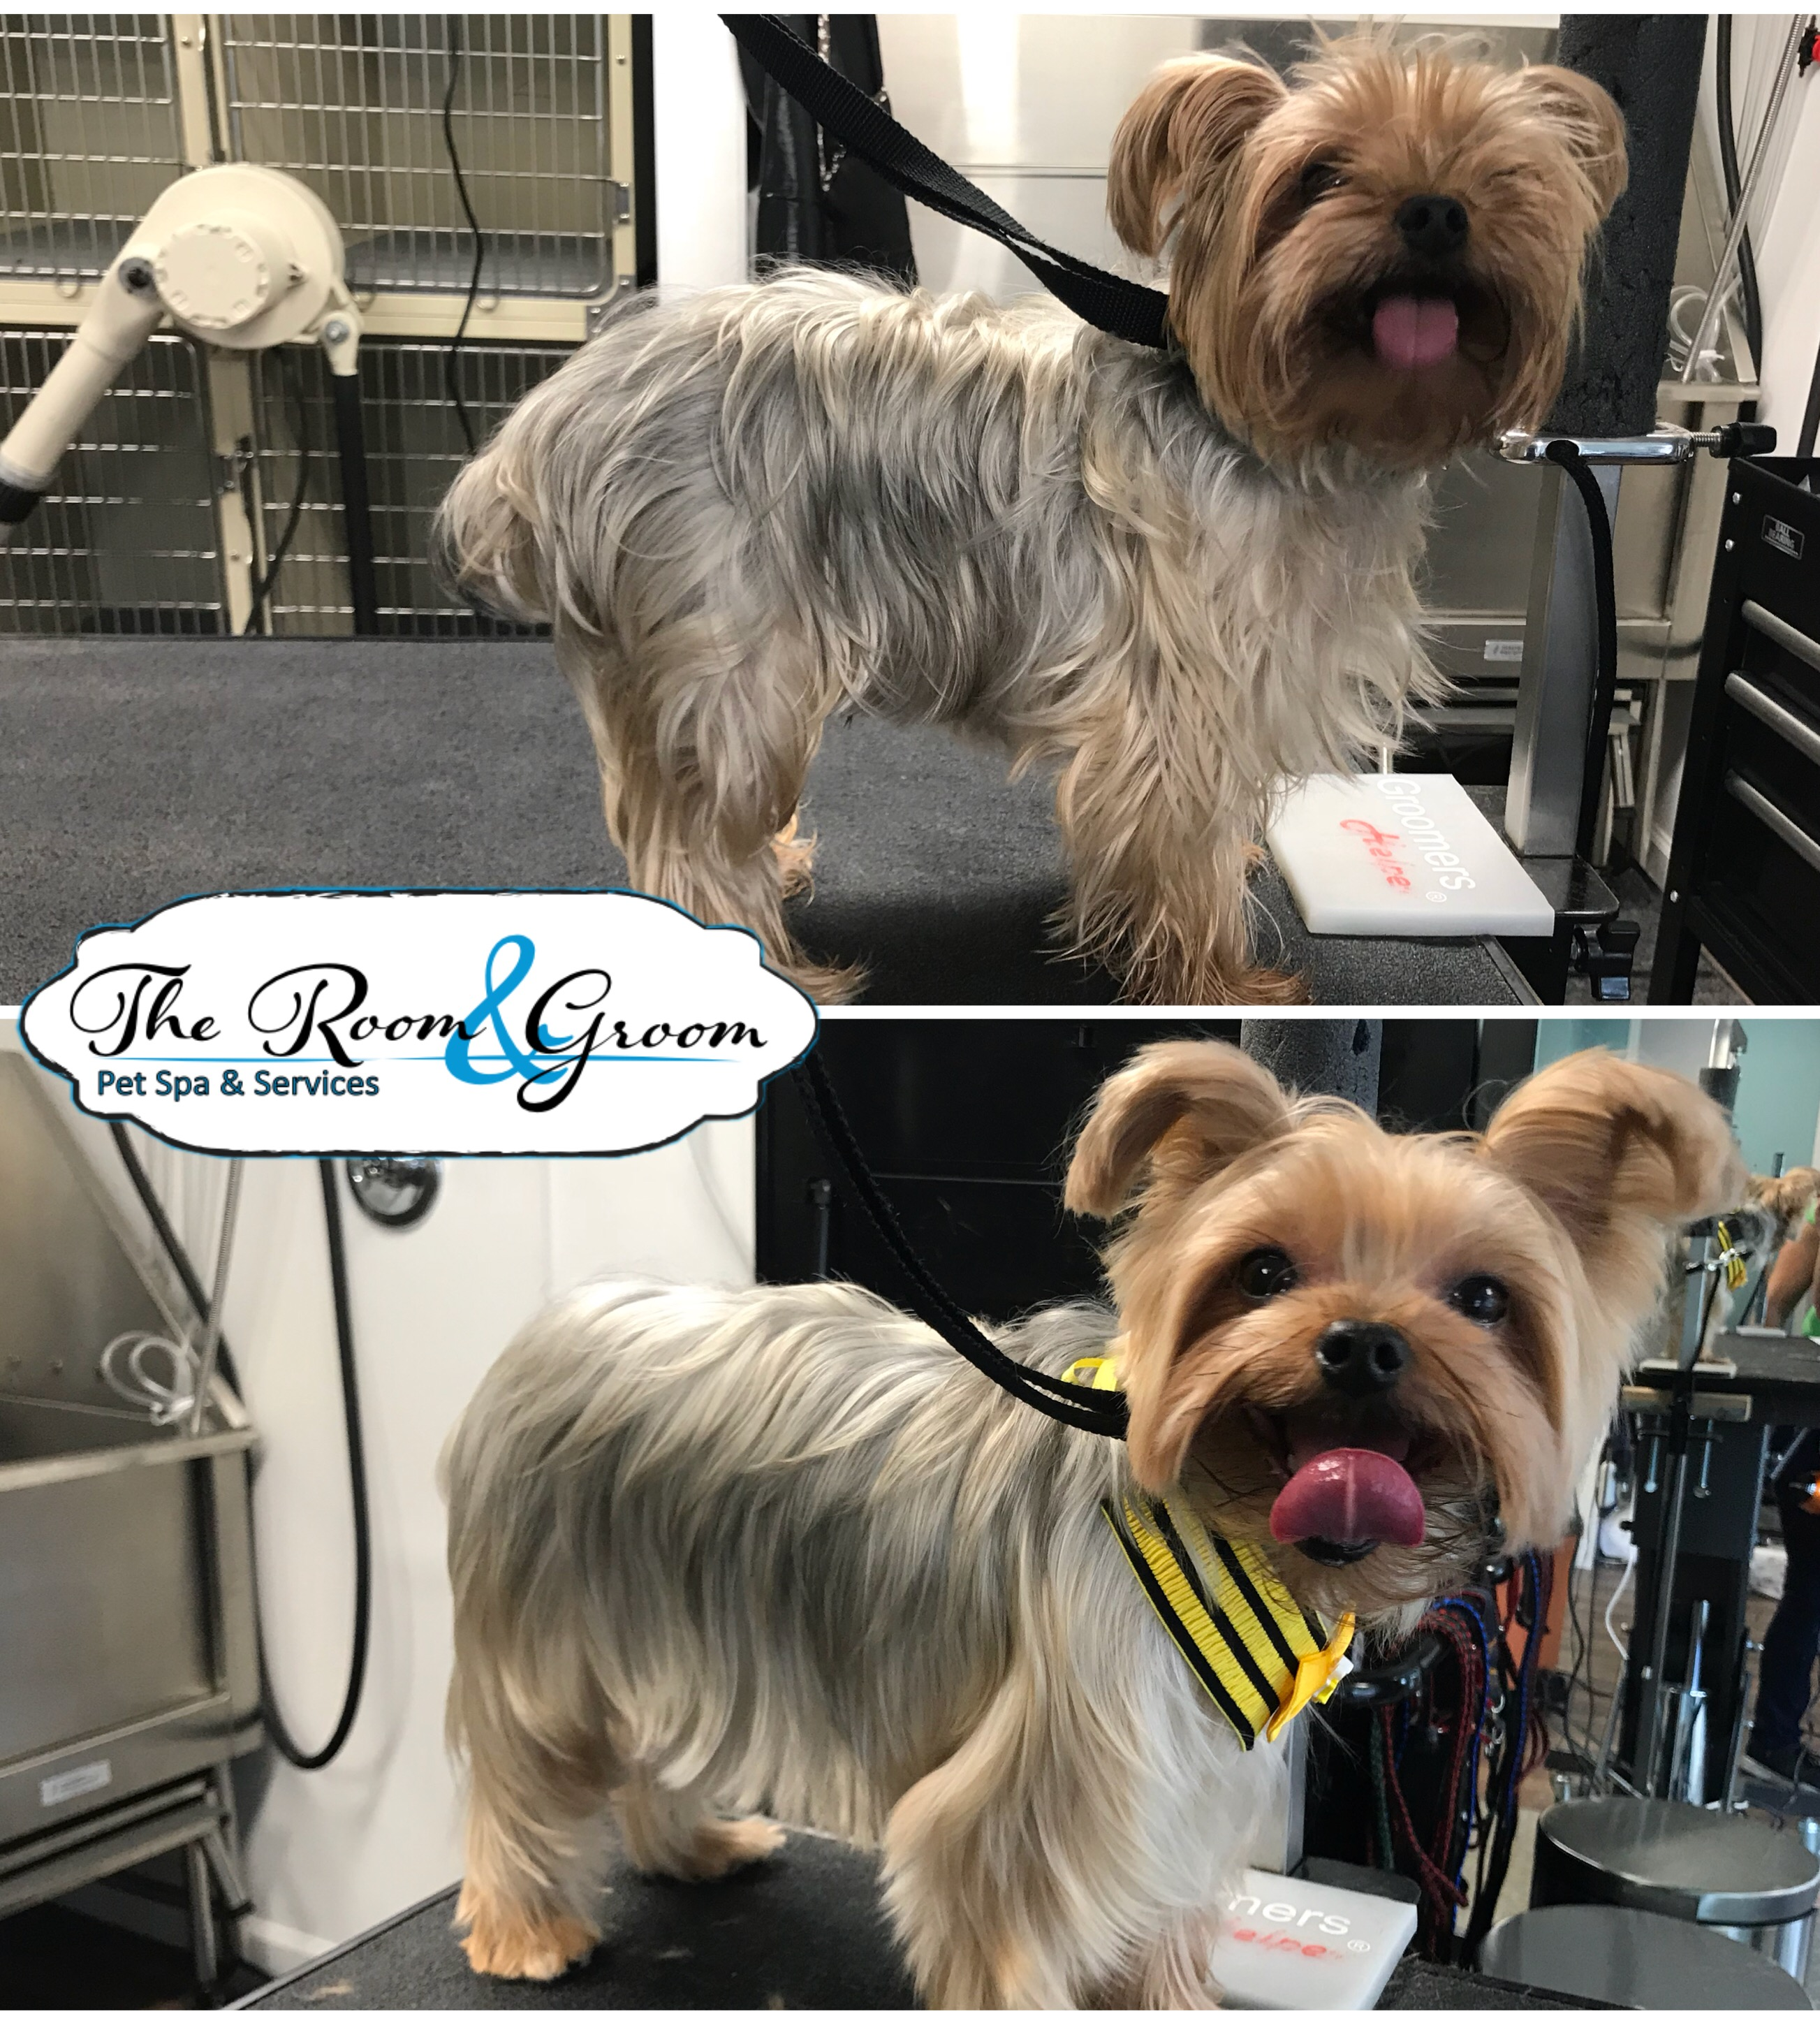 The Room & Groom, Pet Spa & Services image 83